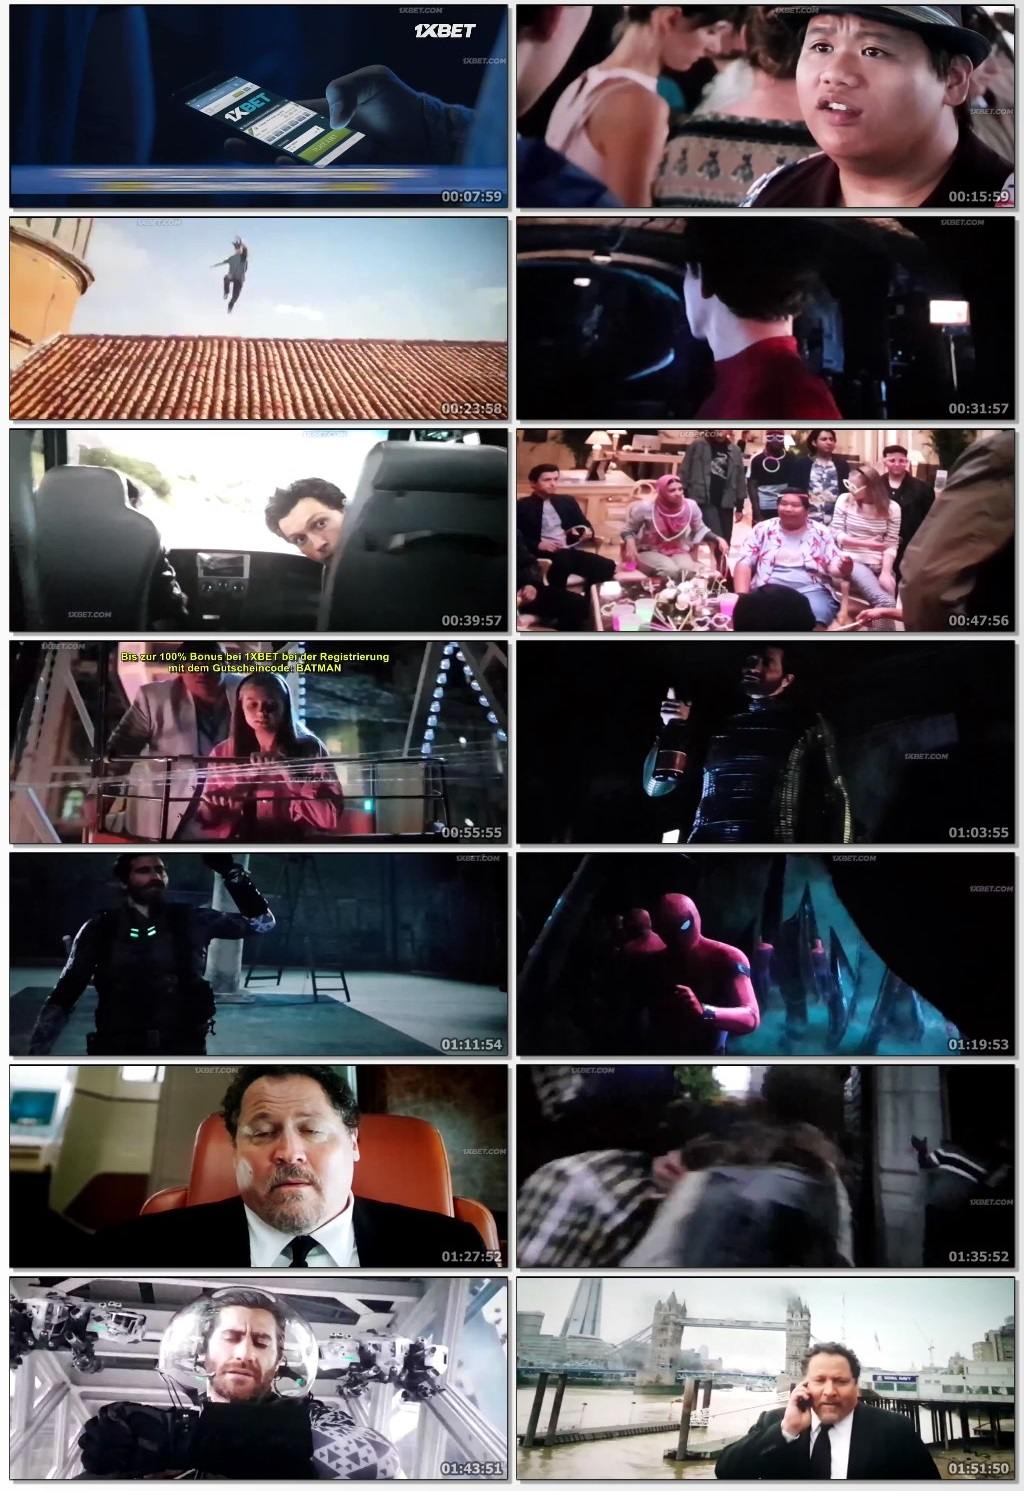 deadpool 2 full movie download in hindi 720p indishare